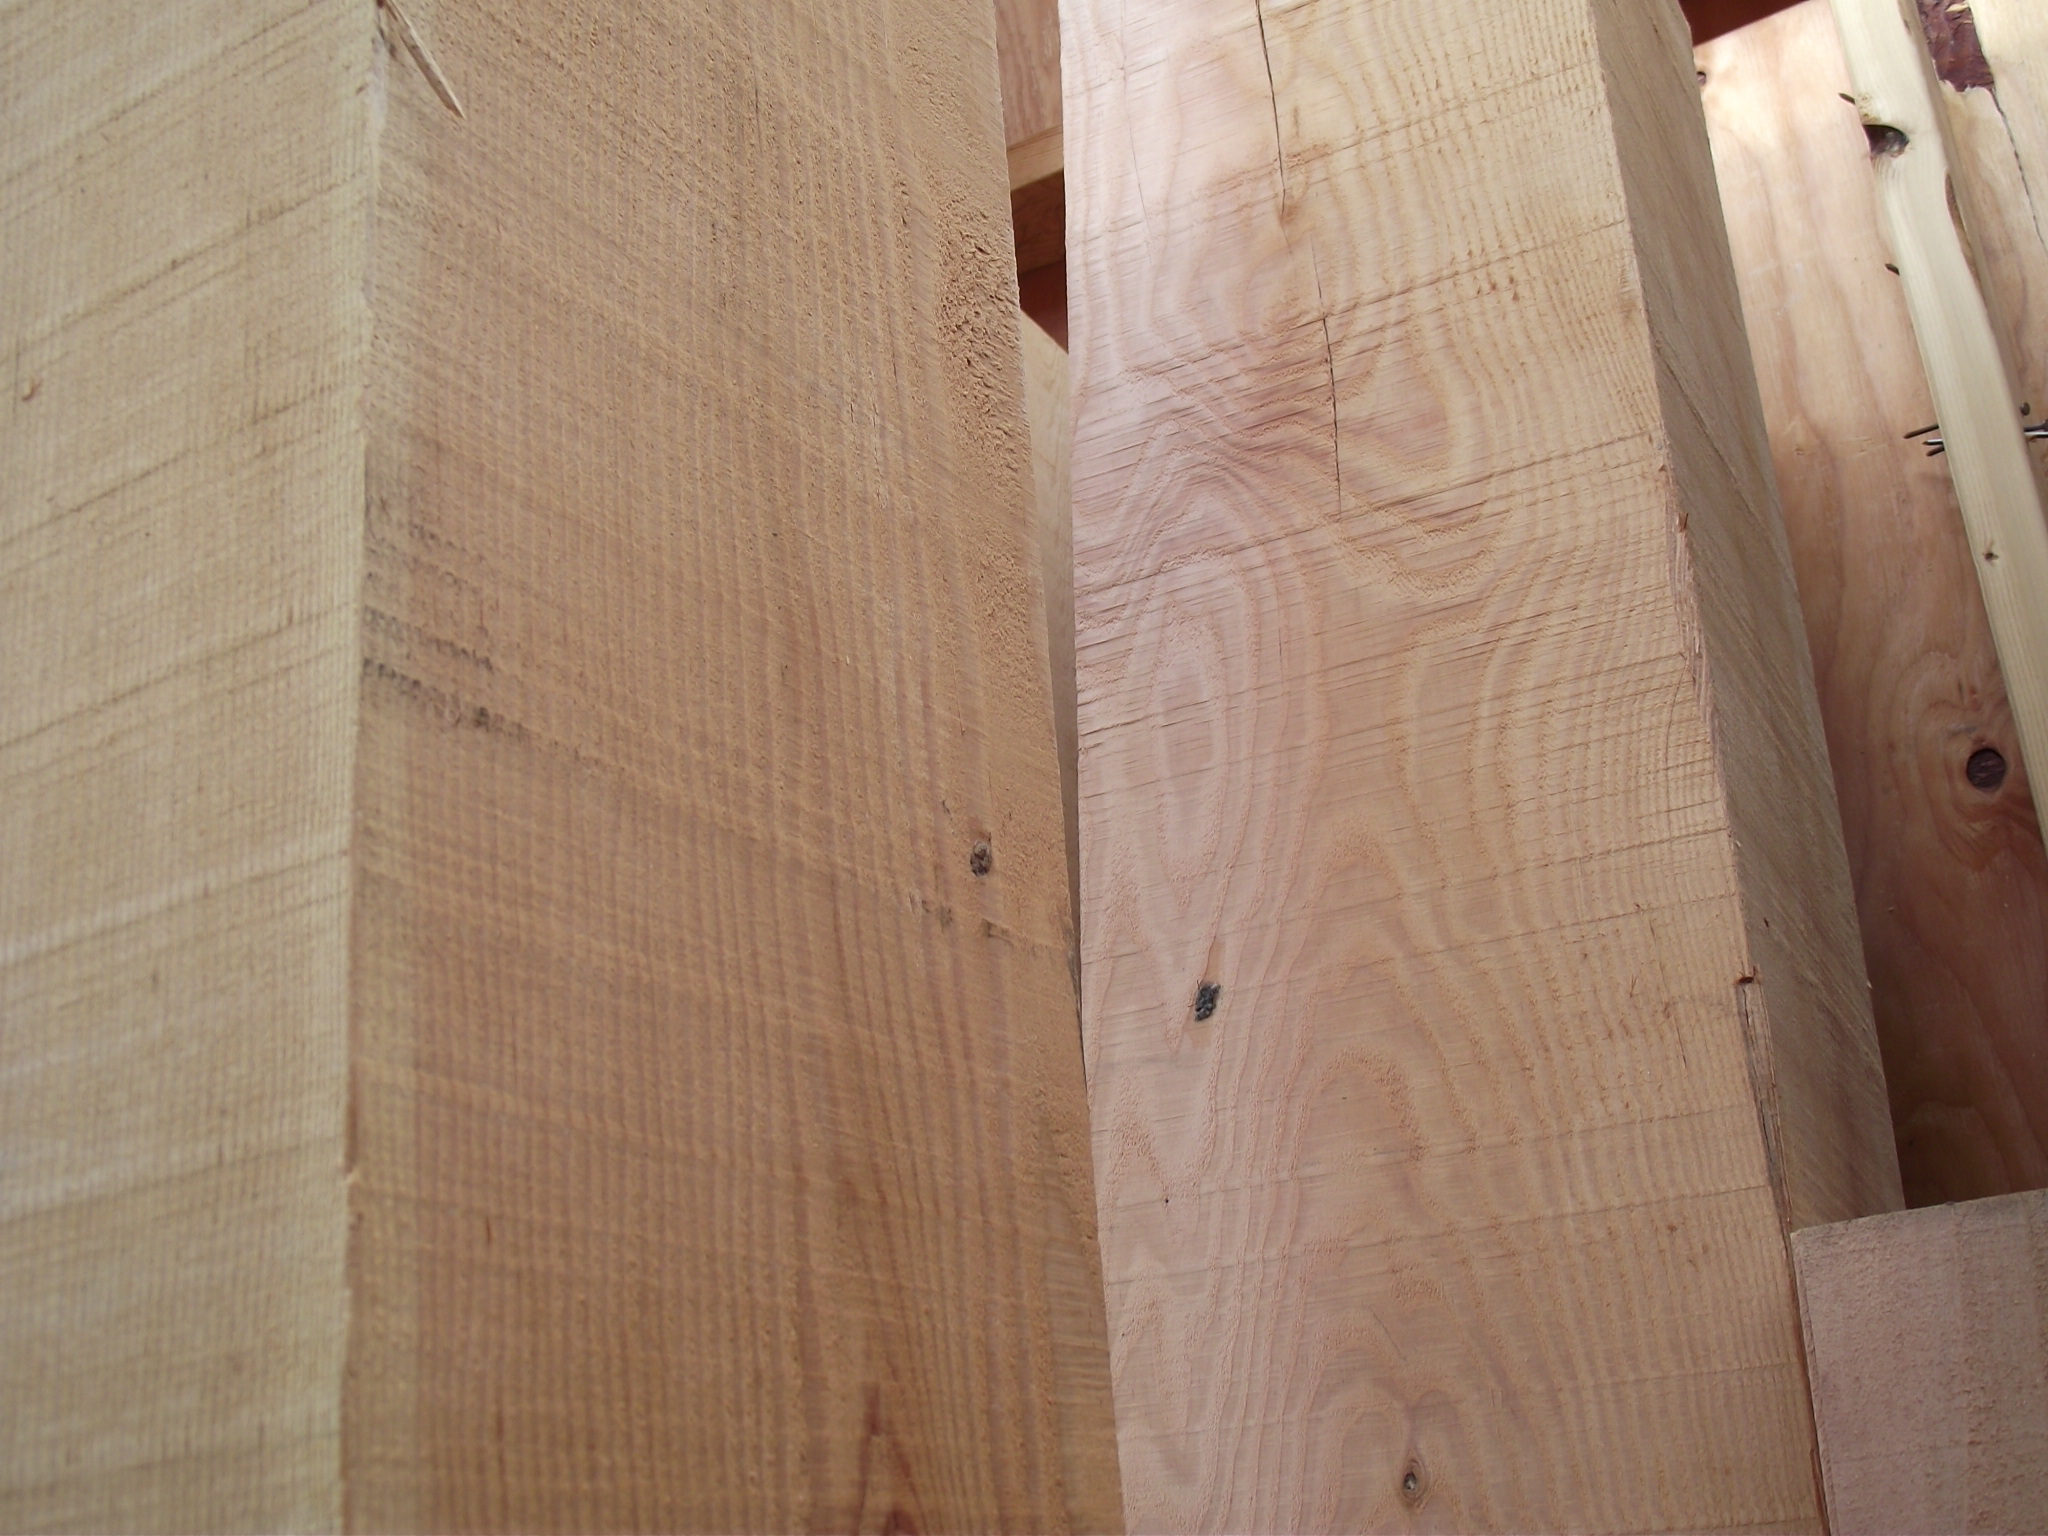 Rough 10 X 10 8 Douglas Fir Kiln Dried Appearance